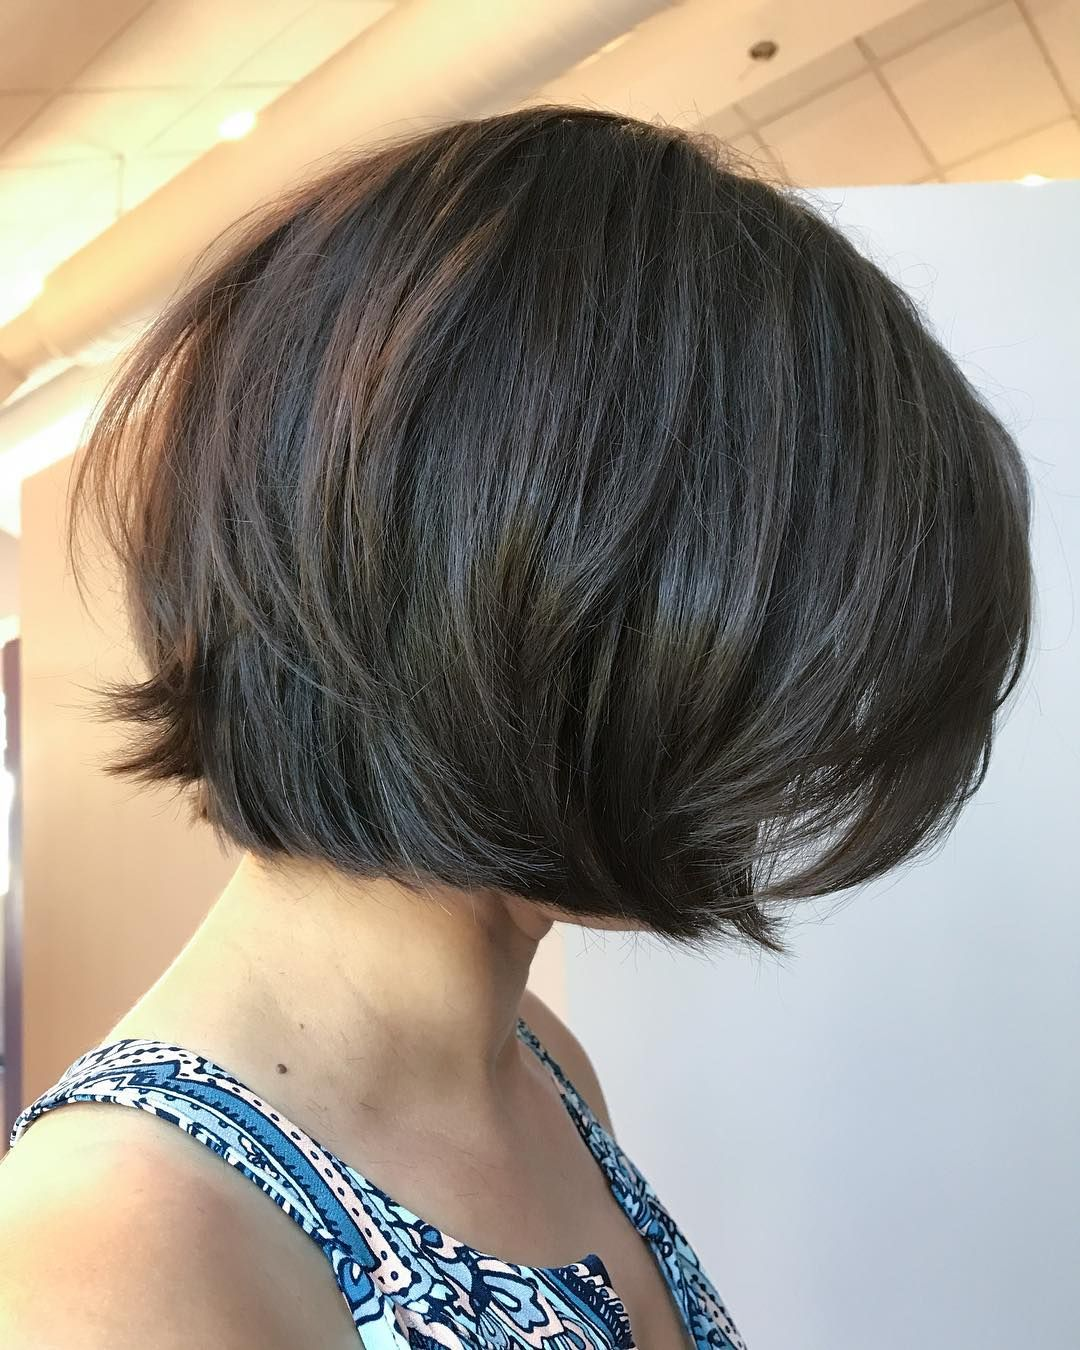 Switching It Up How Cute Is This Razored Texturized Bob On Beth I Love Short Hair Mit Bildern Frisuren Frisuren Mit Pony Kurzhaarfrisuren Mit Fransen